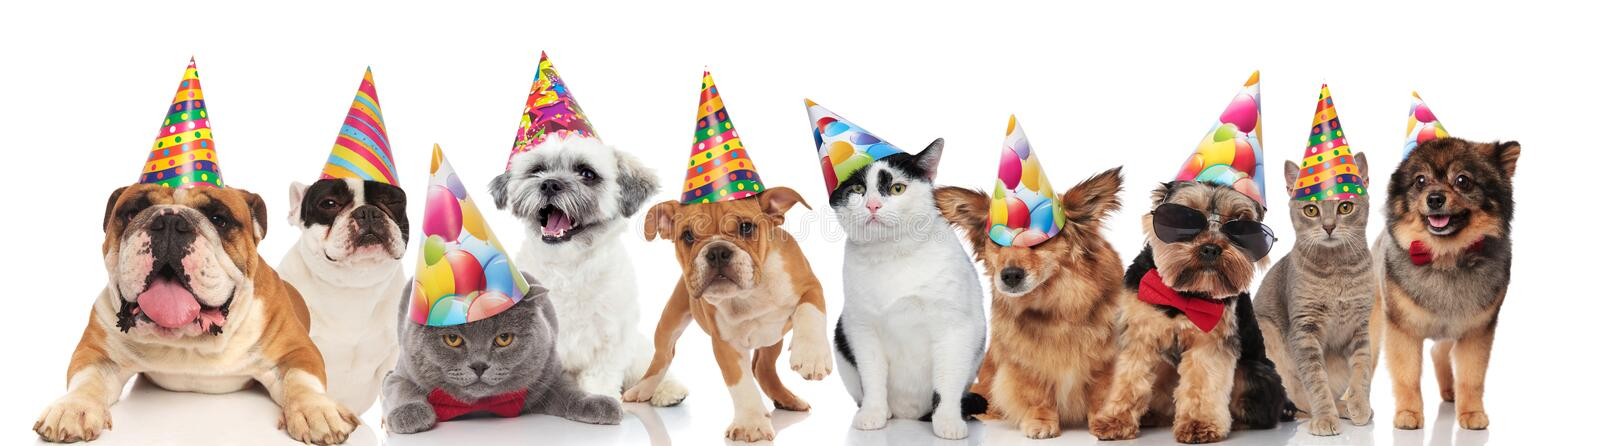 Dogs and cats of different breeds wearing colorful birthday hats. While standing, sitting and lying on white background stock photography